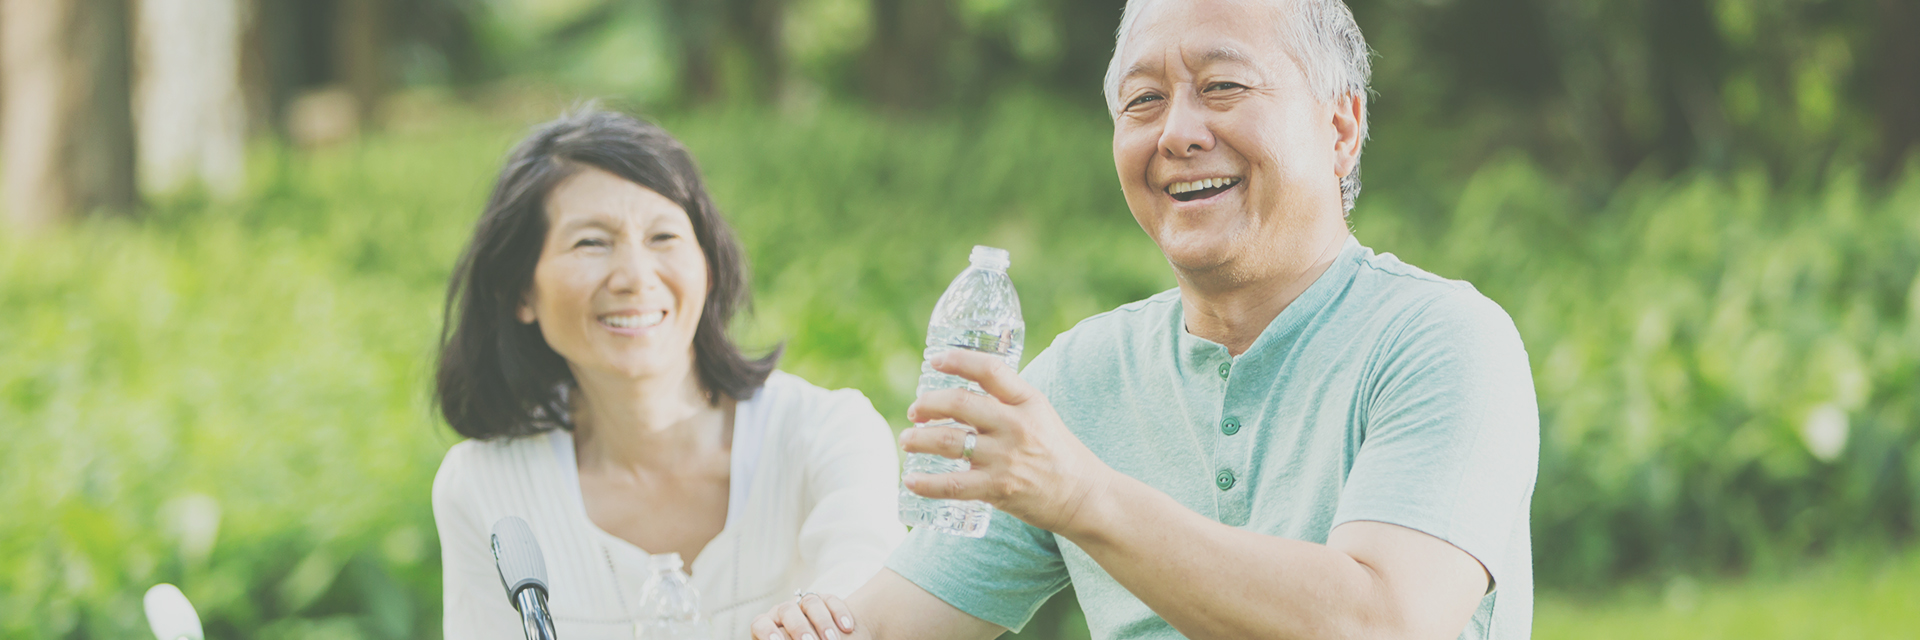 Older couple enjoying water after a bike ride